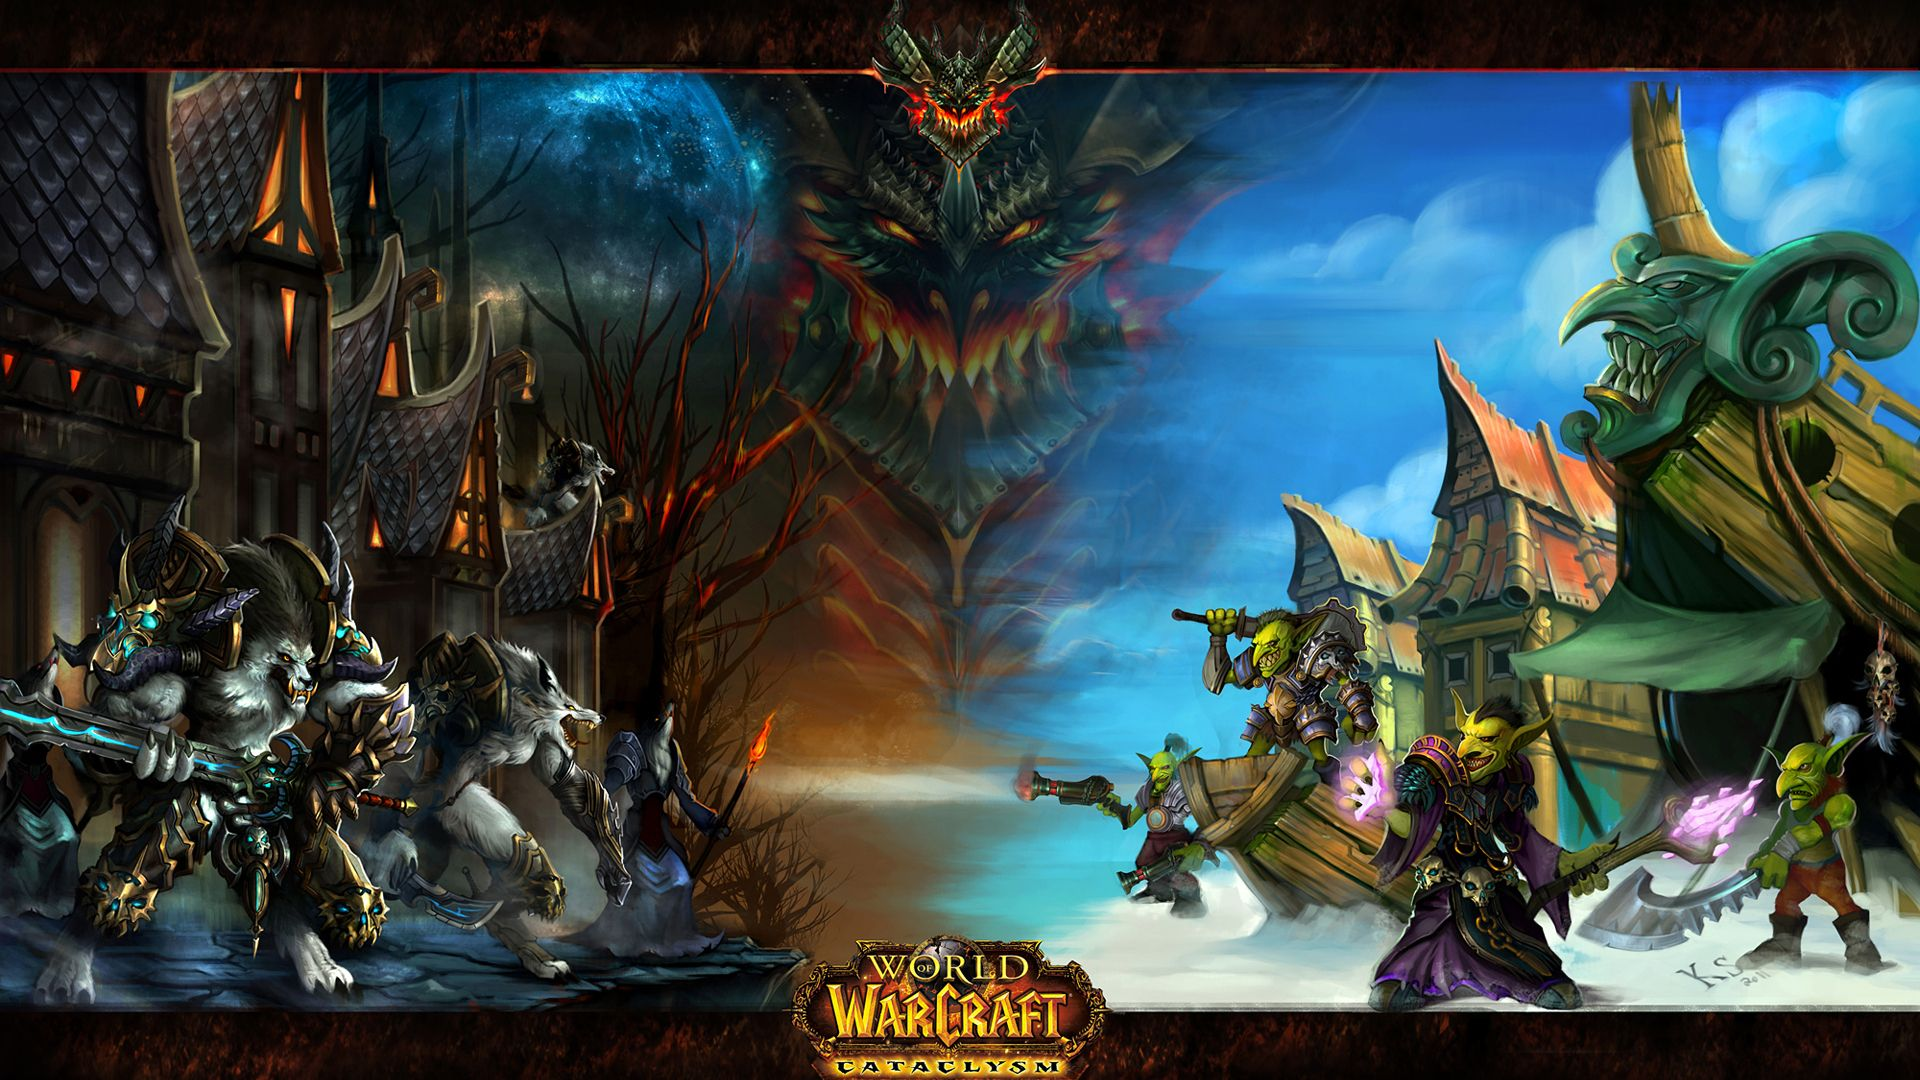 Images Of World Of Warcraft Goblins Wallpaper World Of Warcraft